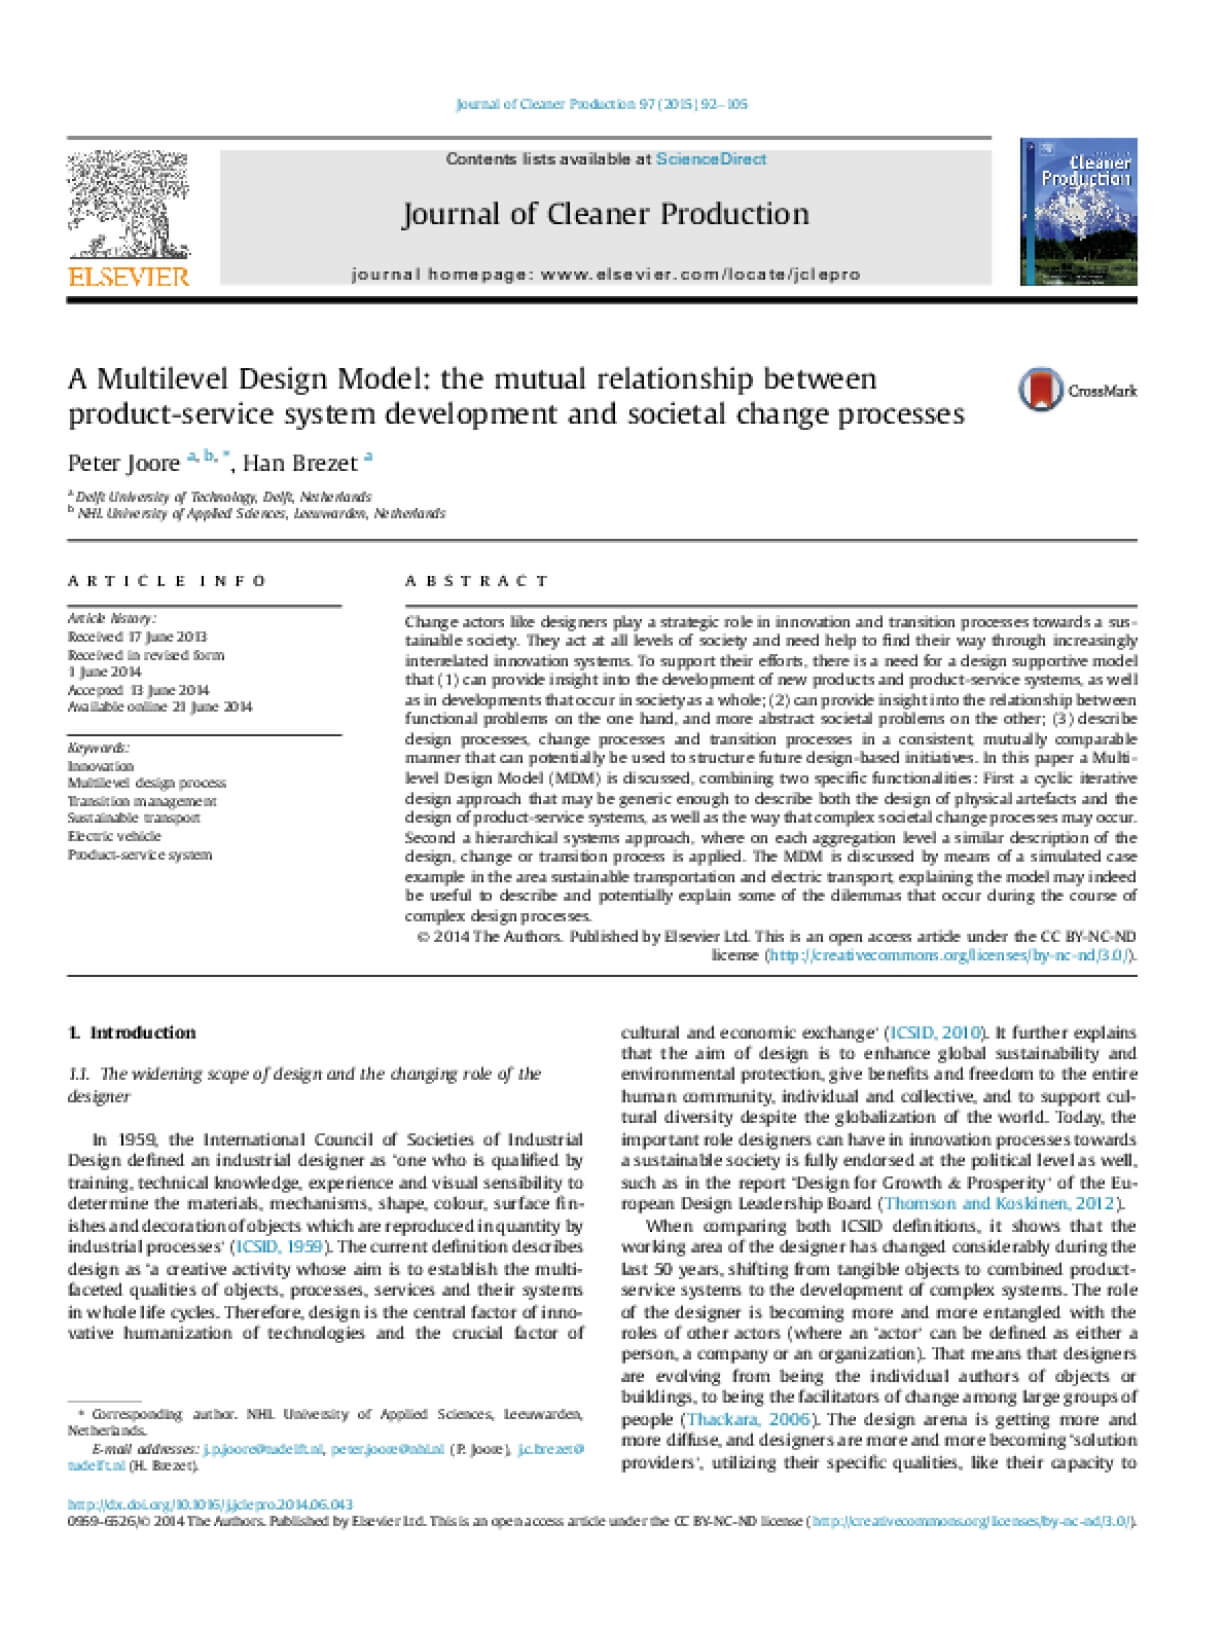 A Multilevel Design Model: The Mutual Relationship Between Product-Service System Development and Societal Change Processes